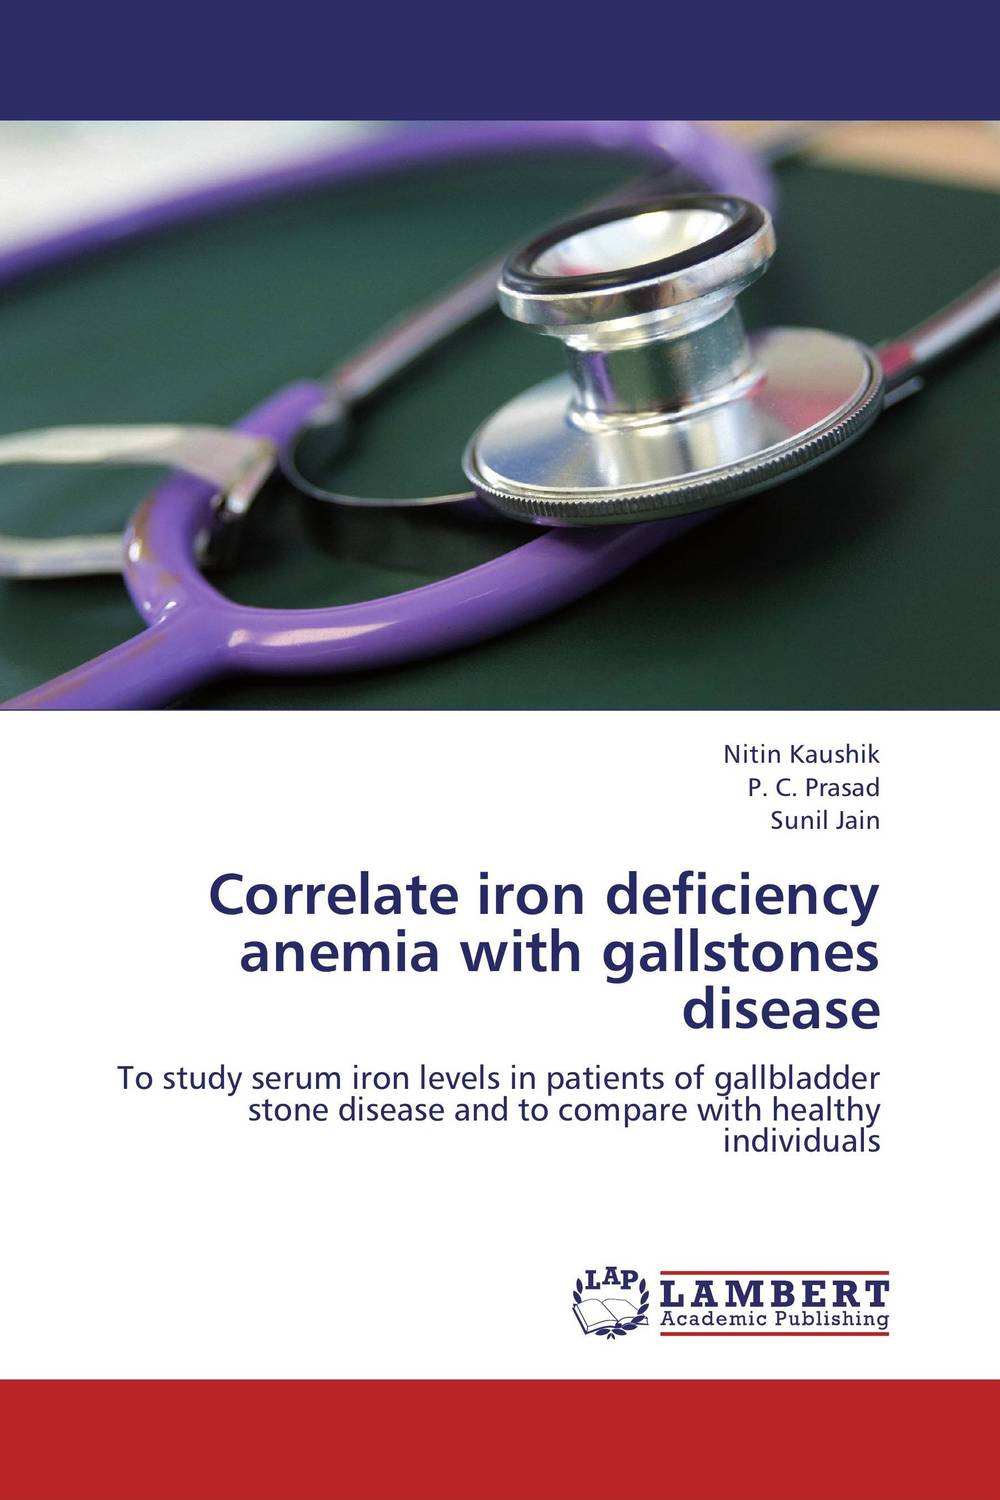 Correlate iron deficiency anemia with gallstones disease колонки в машину недорогие